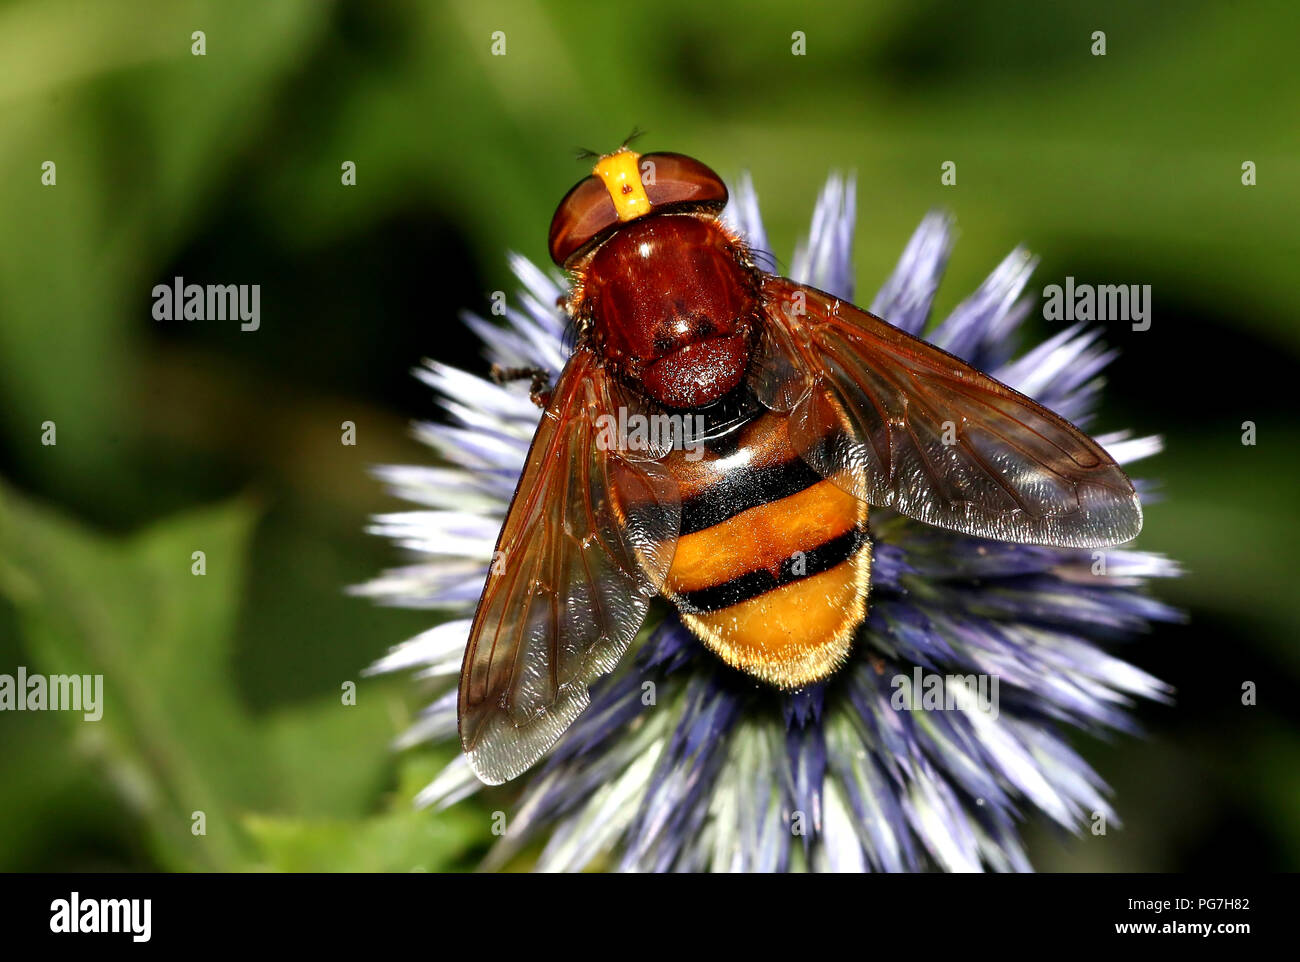 European Hornet mimic hoverfly (Volucella zonaria). Stock Photo